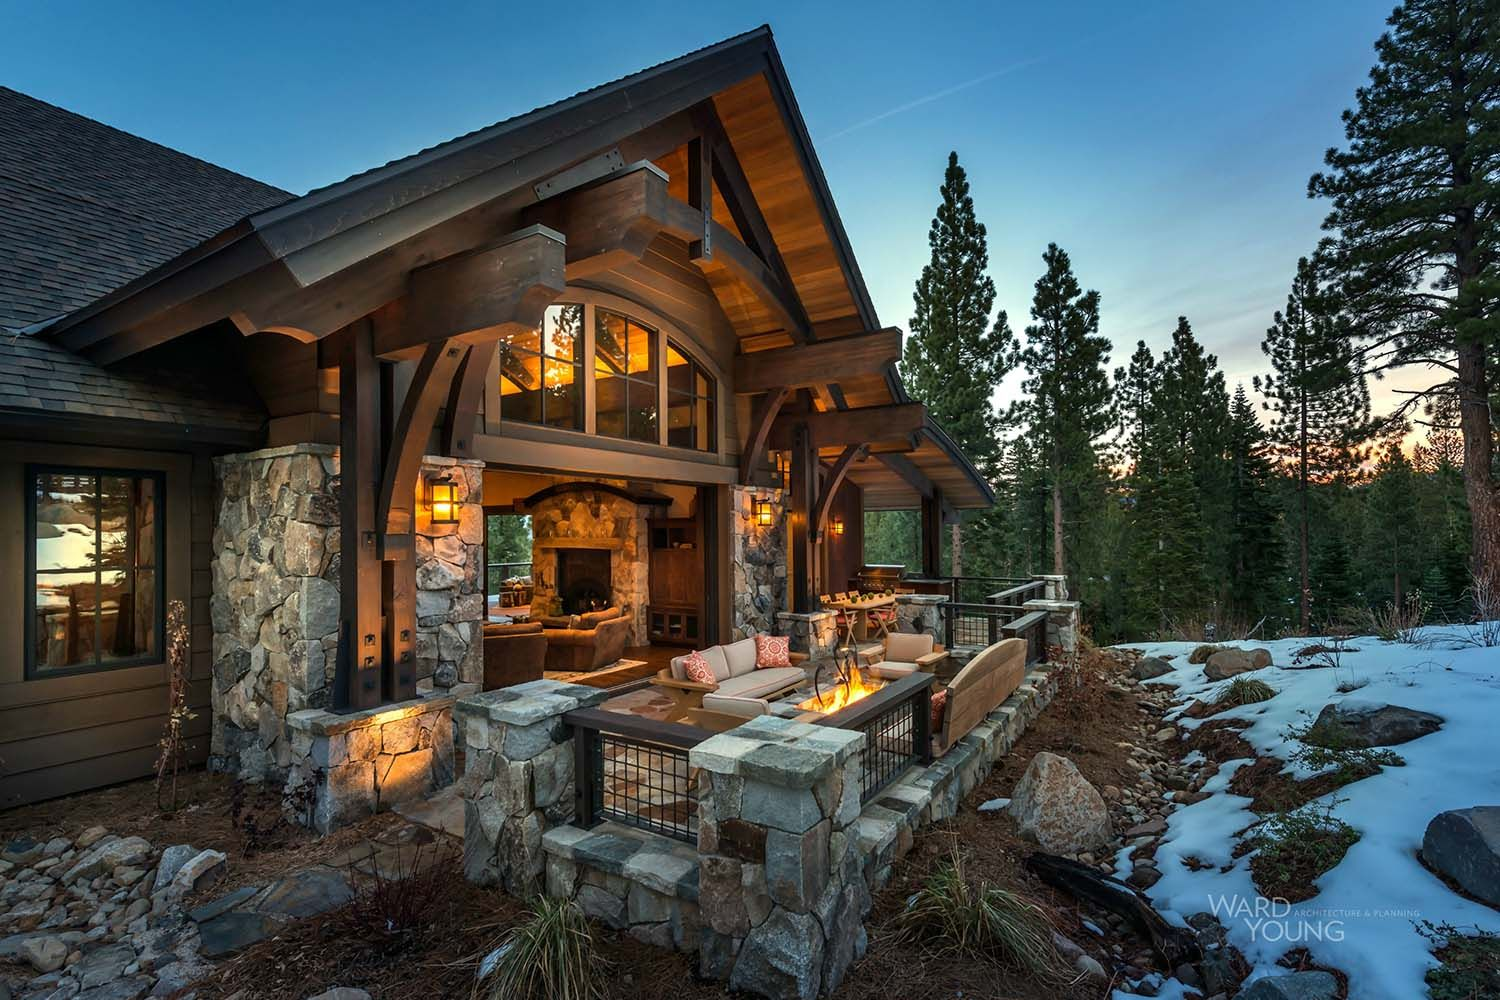 Lodge Style Home Blends Rustic Contemporary In Martis Camp Rustic House House Design Log Homes